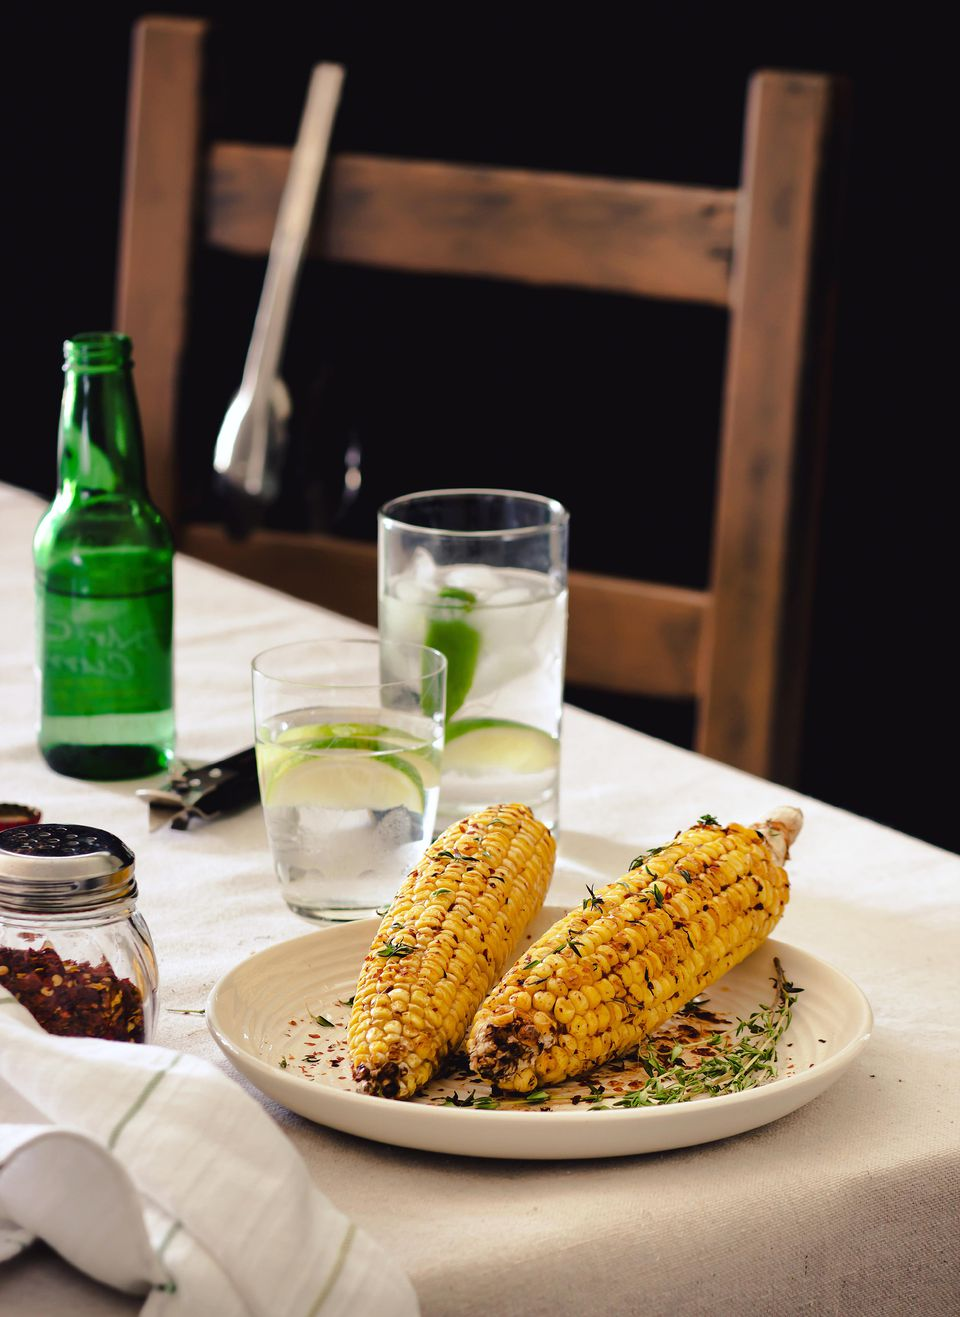 Grilled Corn with Shallot-Parsley Rub